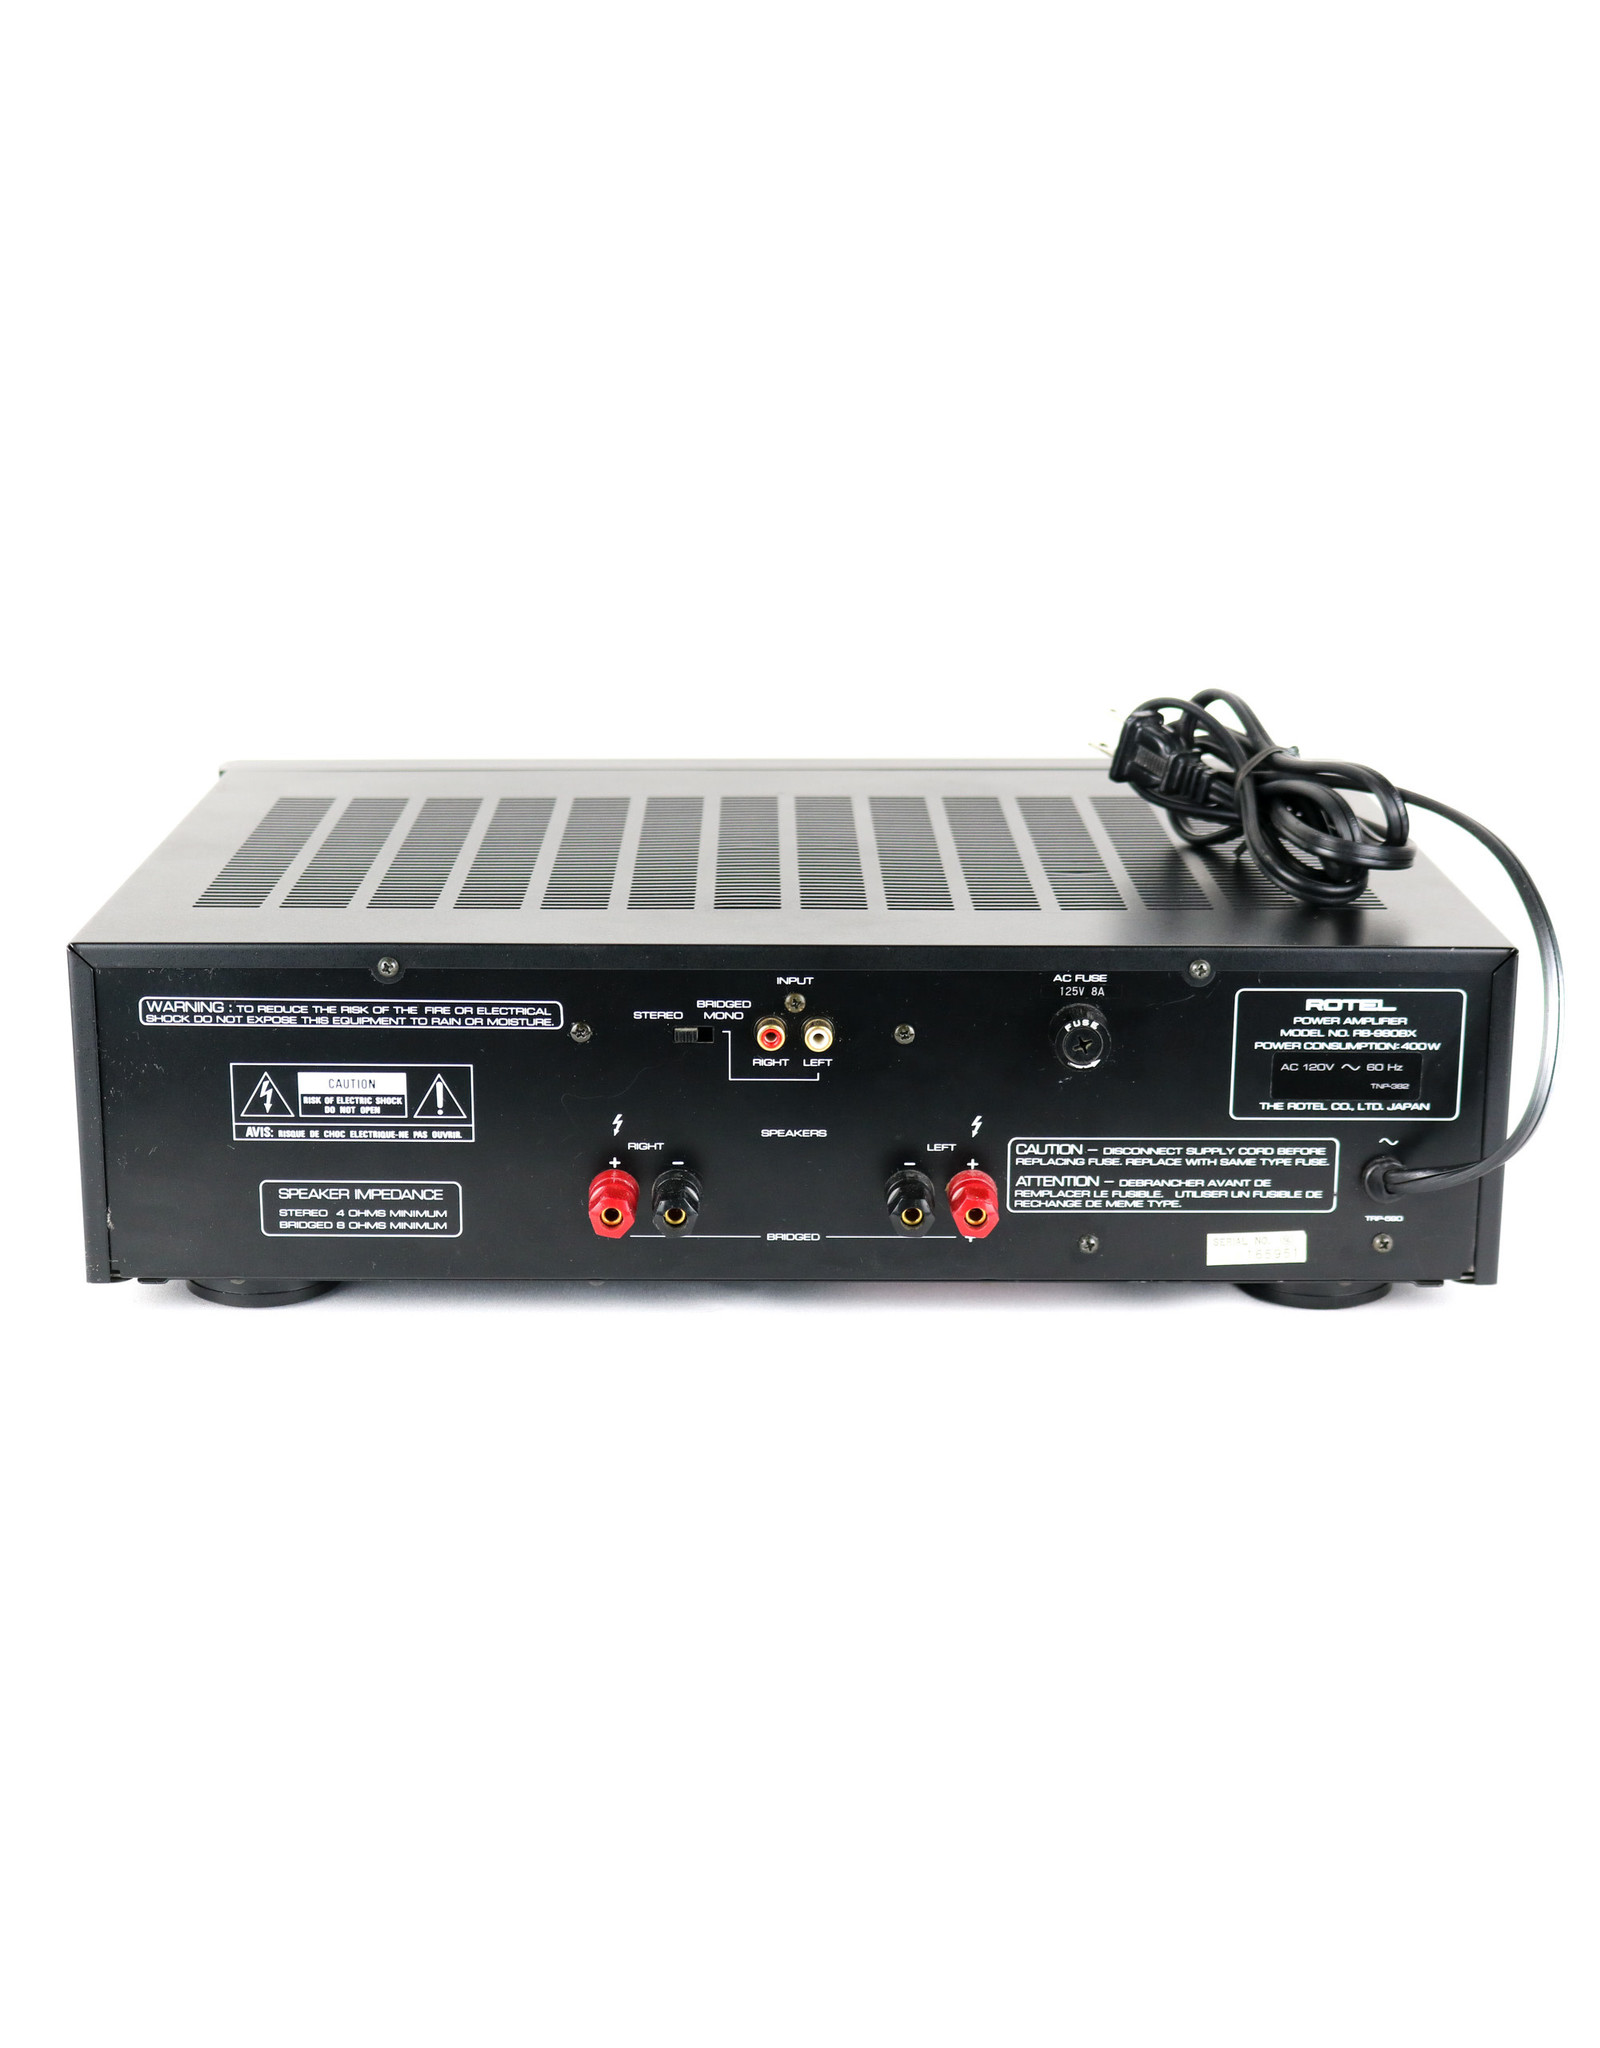 Rotel Rotel RB-980BX Power Amp USED